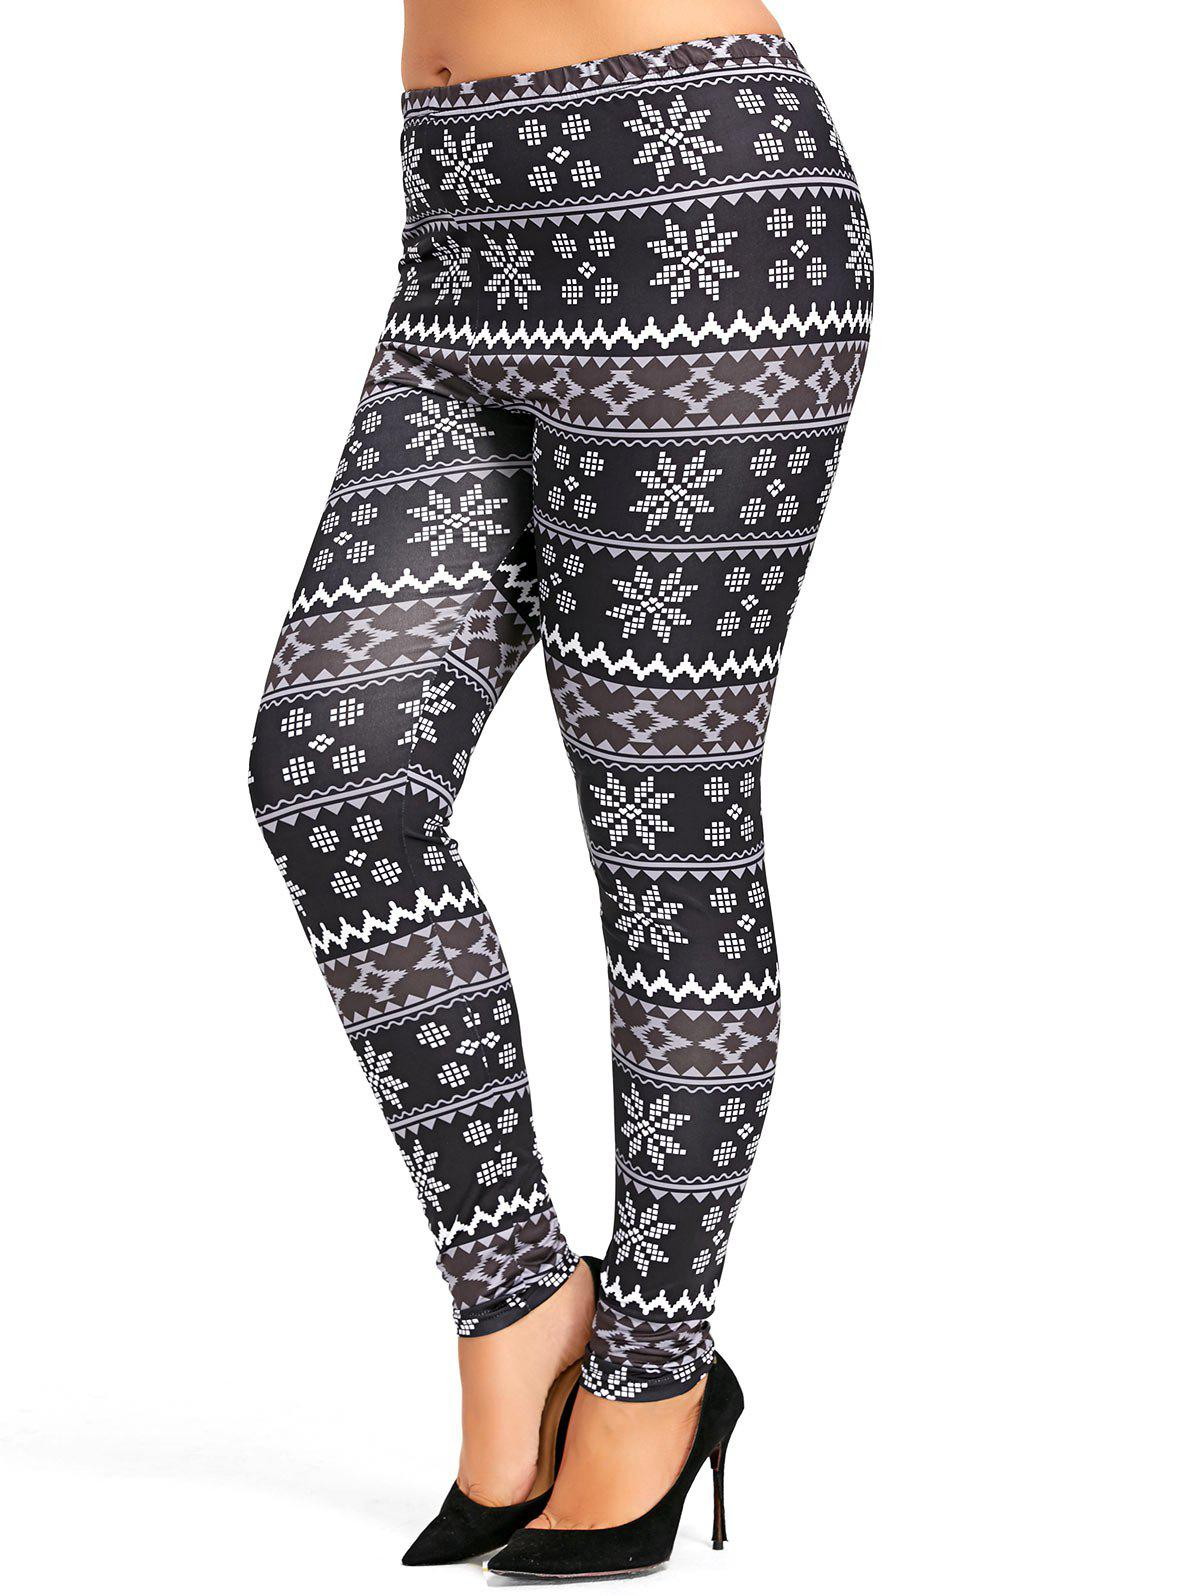 Plus Size High Waisted Snowflake Christmas LegggingsWOMEN<br><br>Size: 4XL; Color: BLACK; Style: Casual; Length: Normal; Material: Cotton,Spandex; Fit Type: Skinny; Waist Type: High; Closure Type: Elastic Waist; Front Style: Flat; Pattern Type: Others; Pant Style: Pencil Pants; With Belt: No; Weight: 0.3100kg; Package Contents: 1 x Leggings;